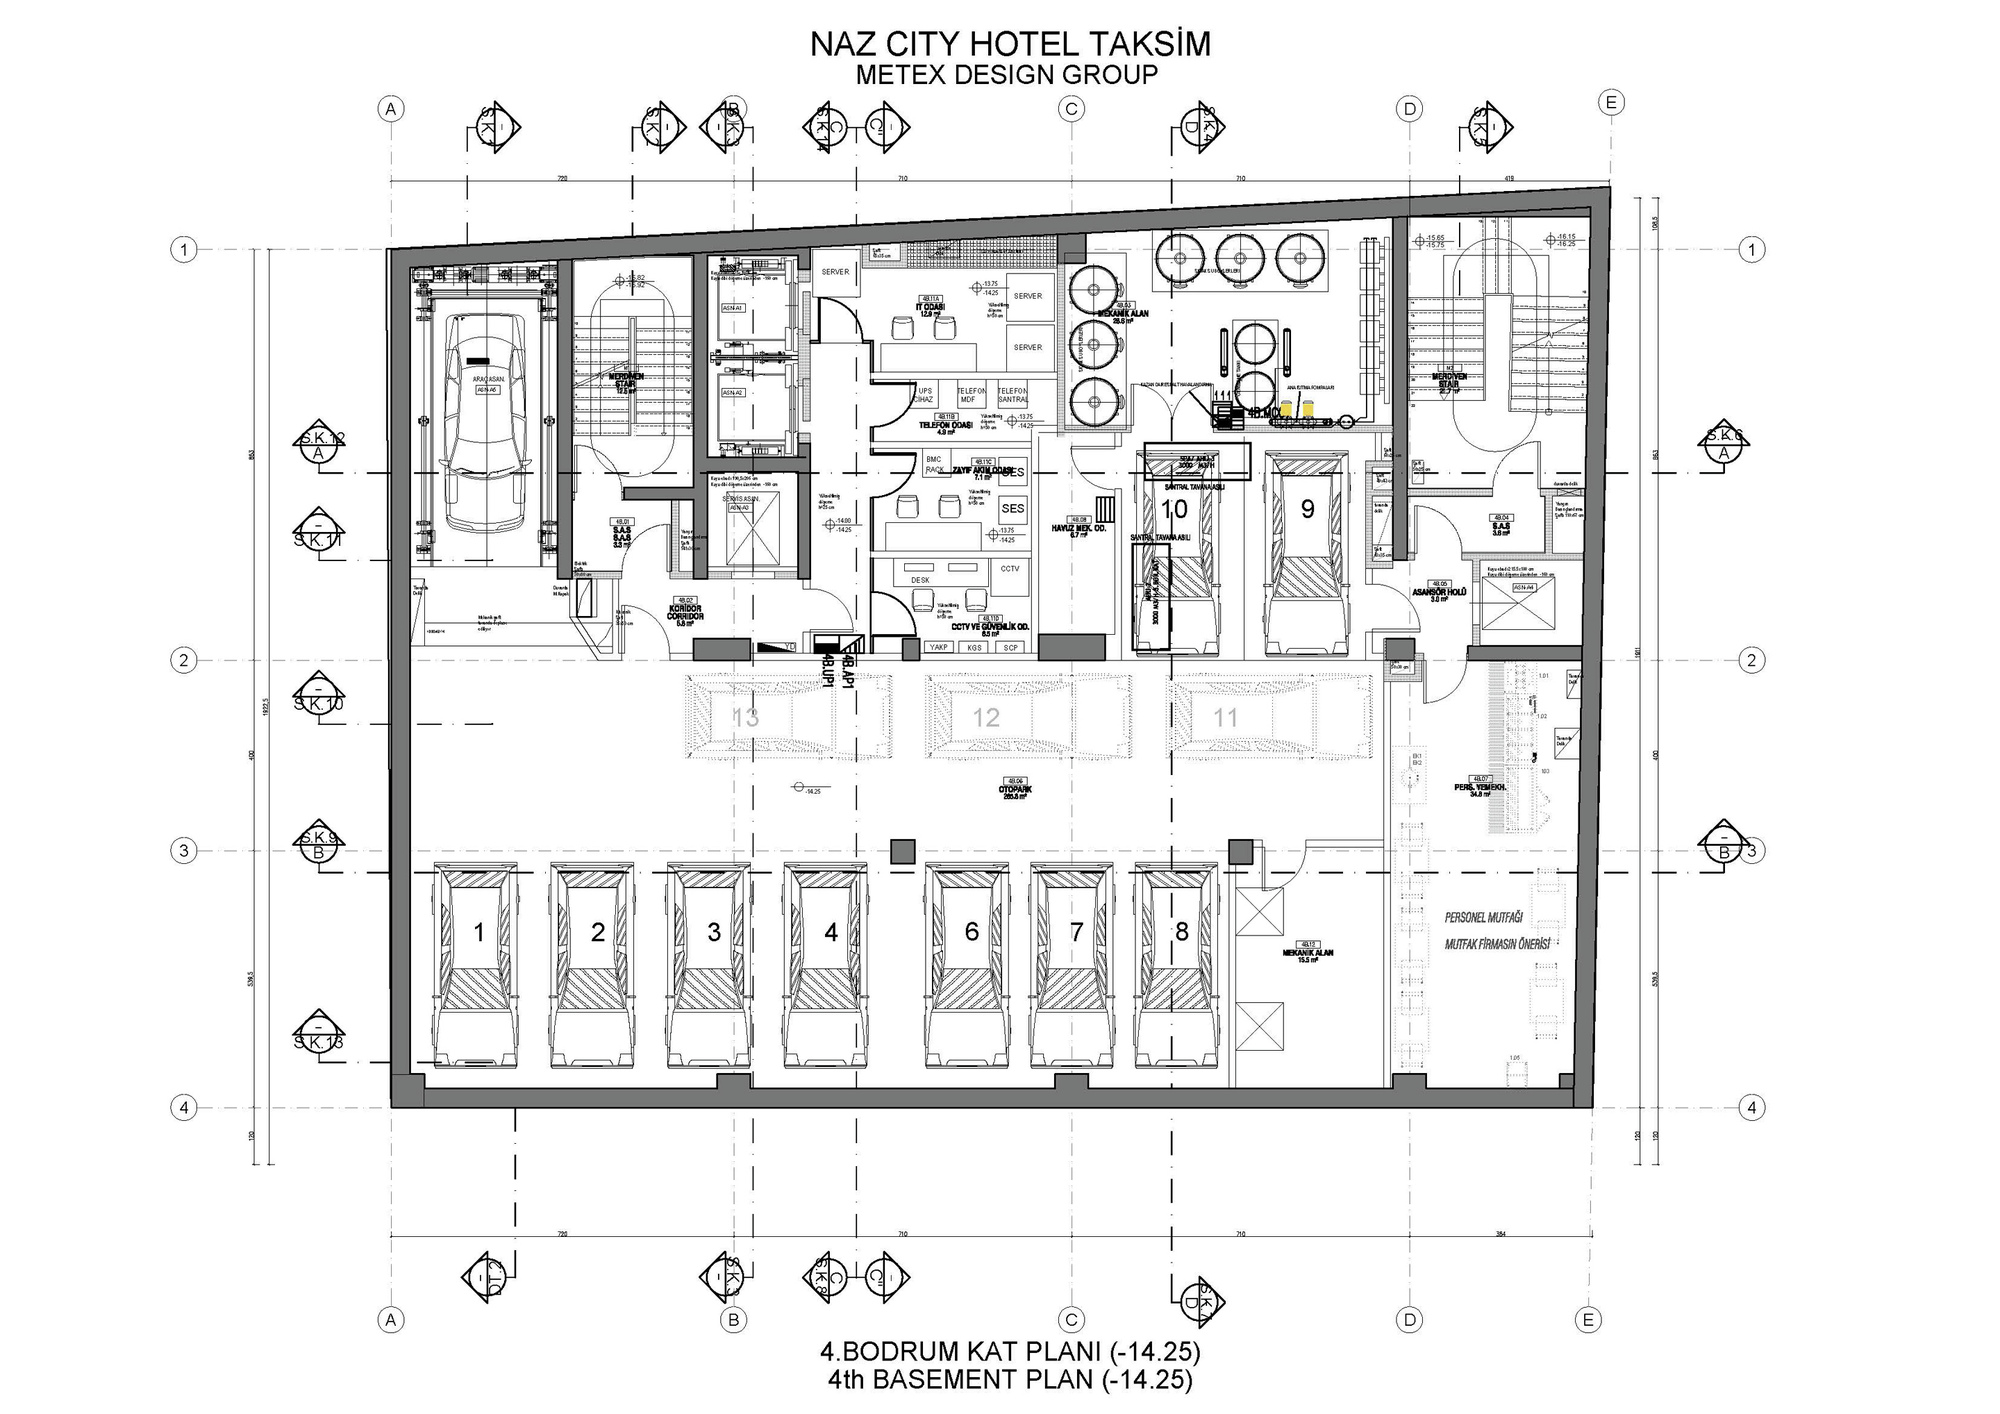 Gallery of naz city hotel taksim metex design group 36 for City hotel design